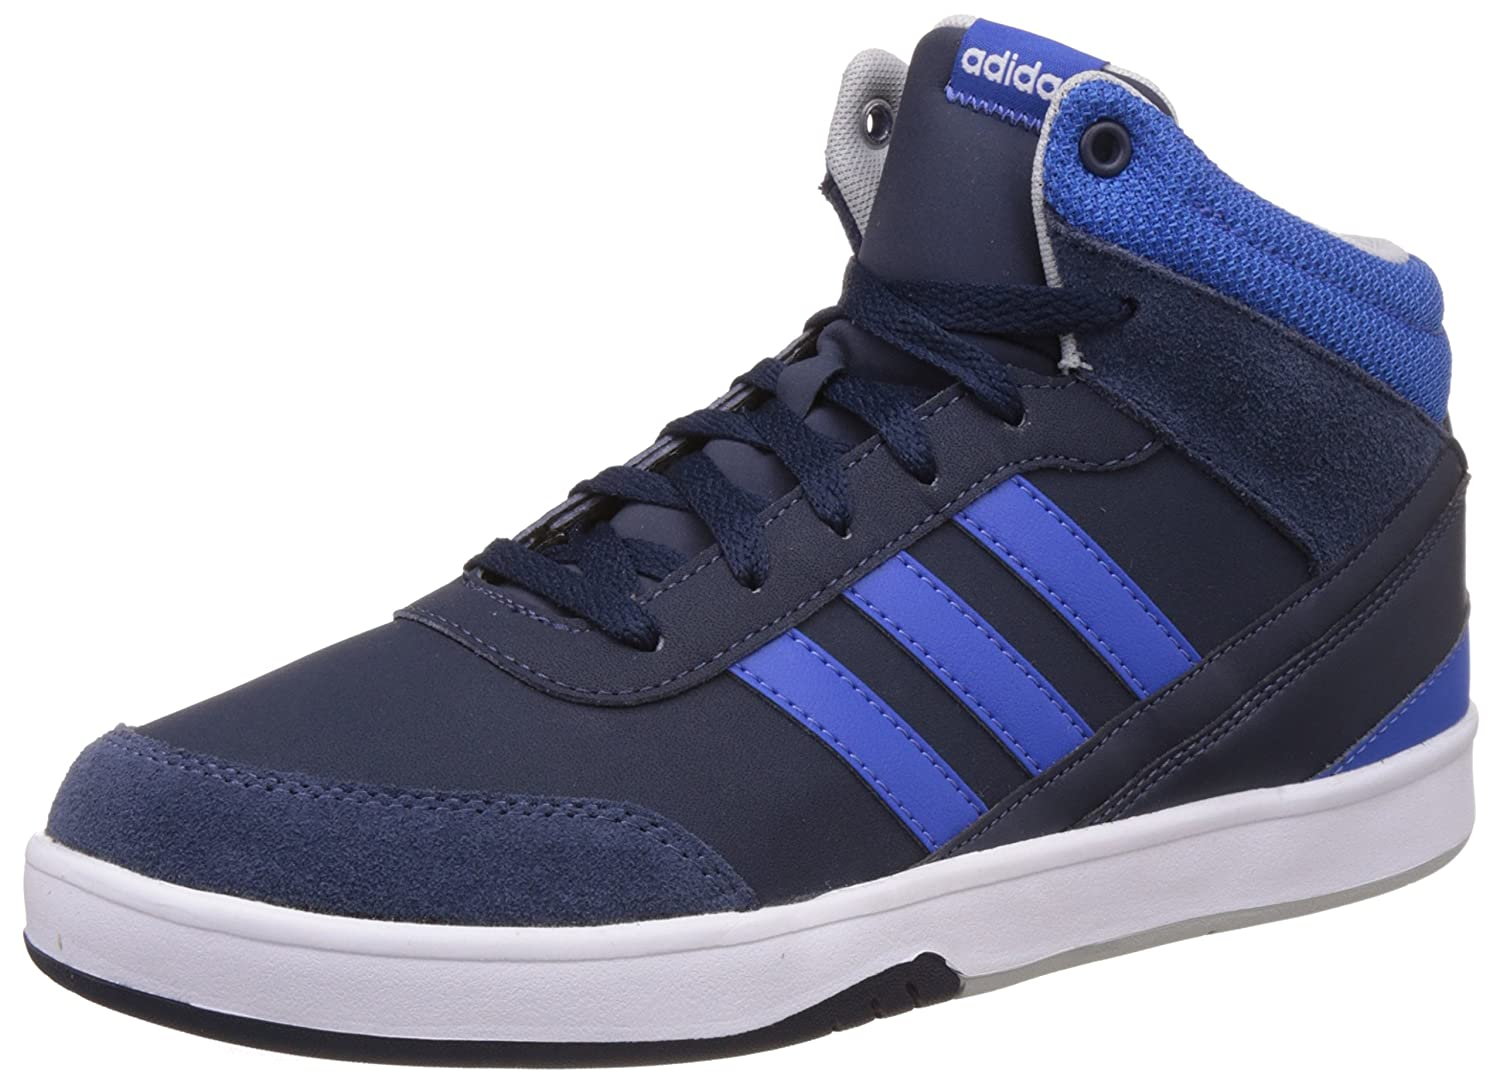 Adidas Neo Hoops Premium Leather